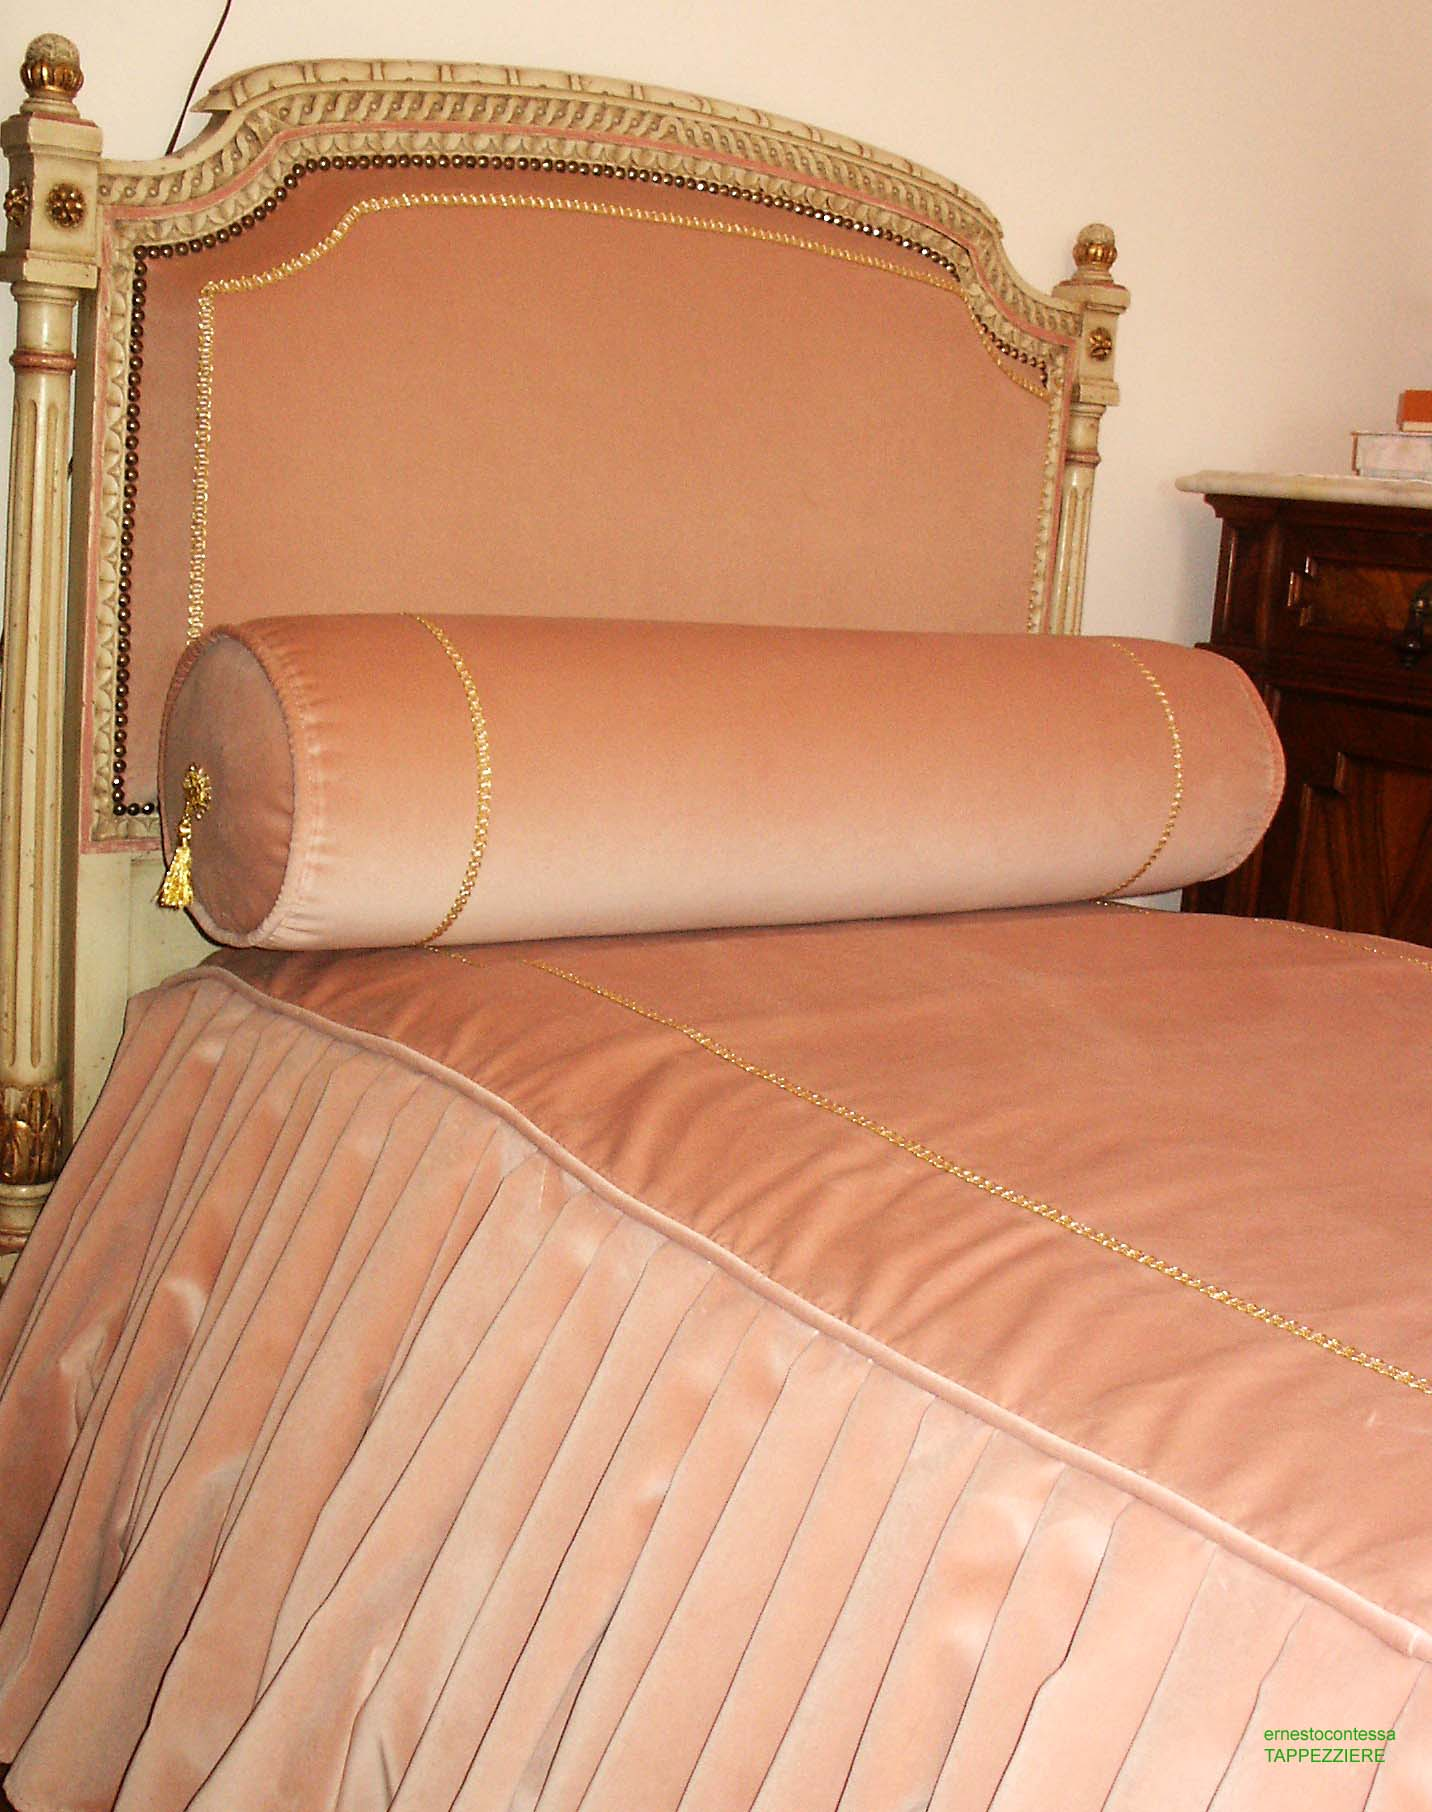 Paint Your Life Letto A Castello.Ernesto Contessa Upholster Mad In Europe